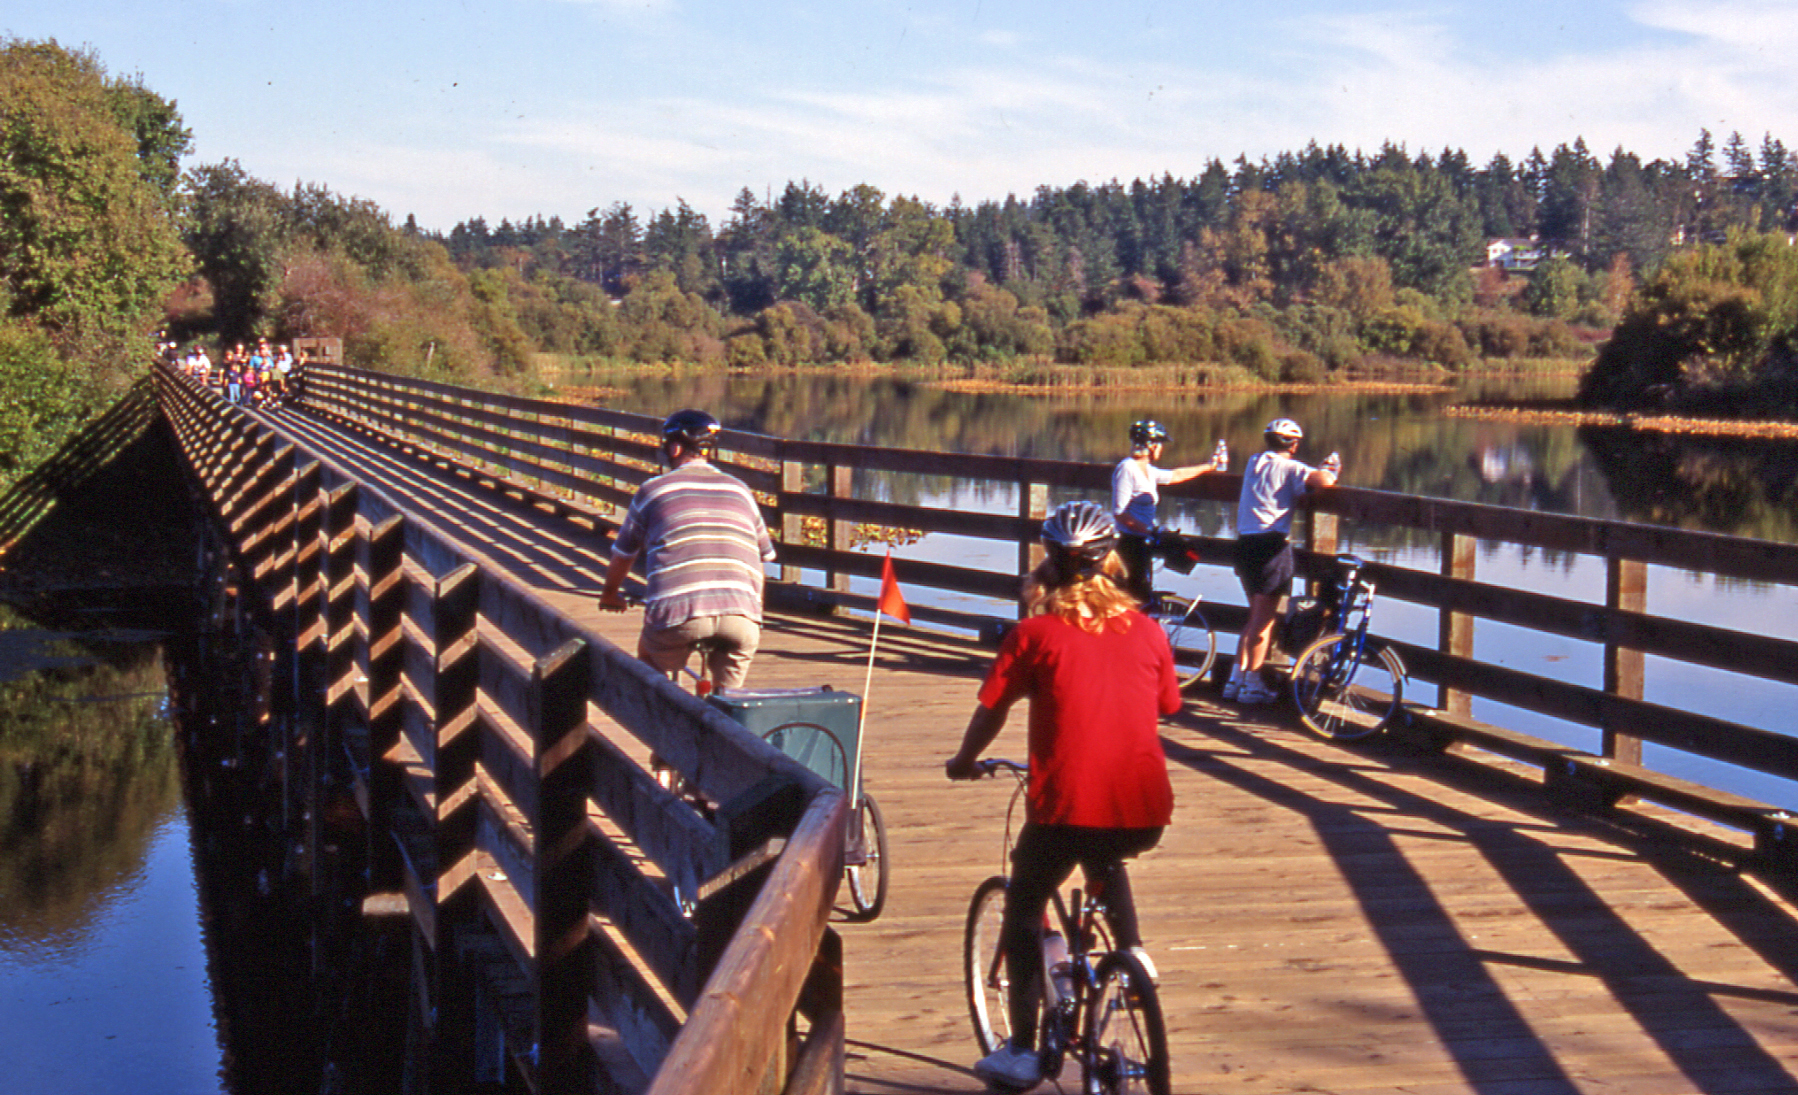 Cyclists At A Lake In Victoria, Healthy Living + Travel